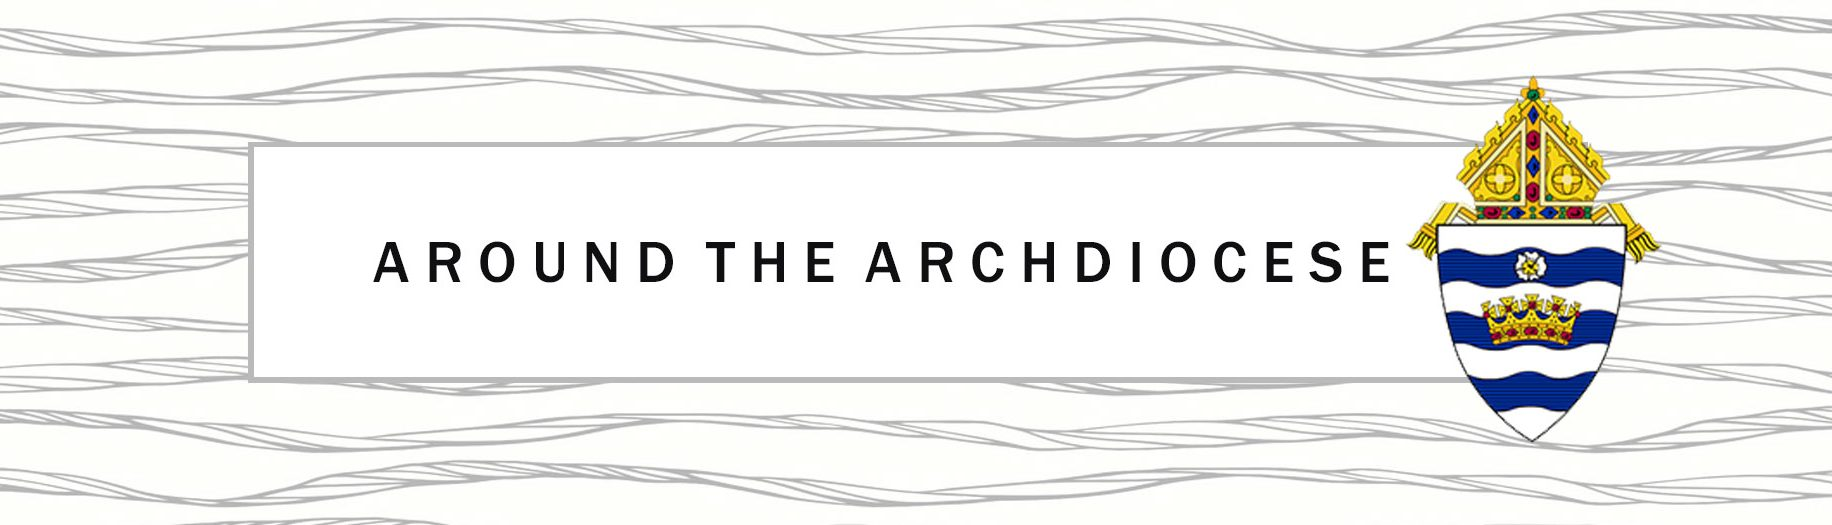 Around the Archdiocese